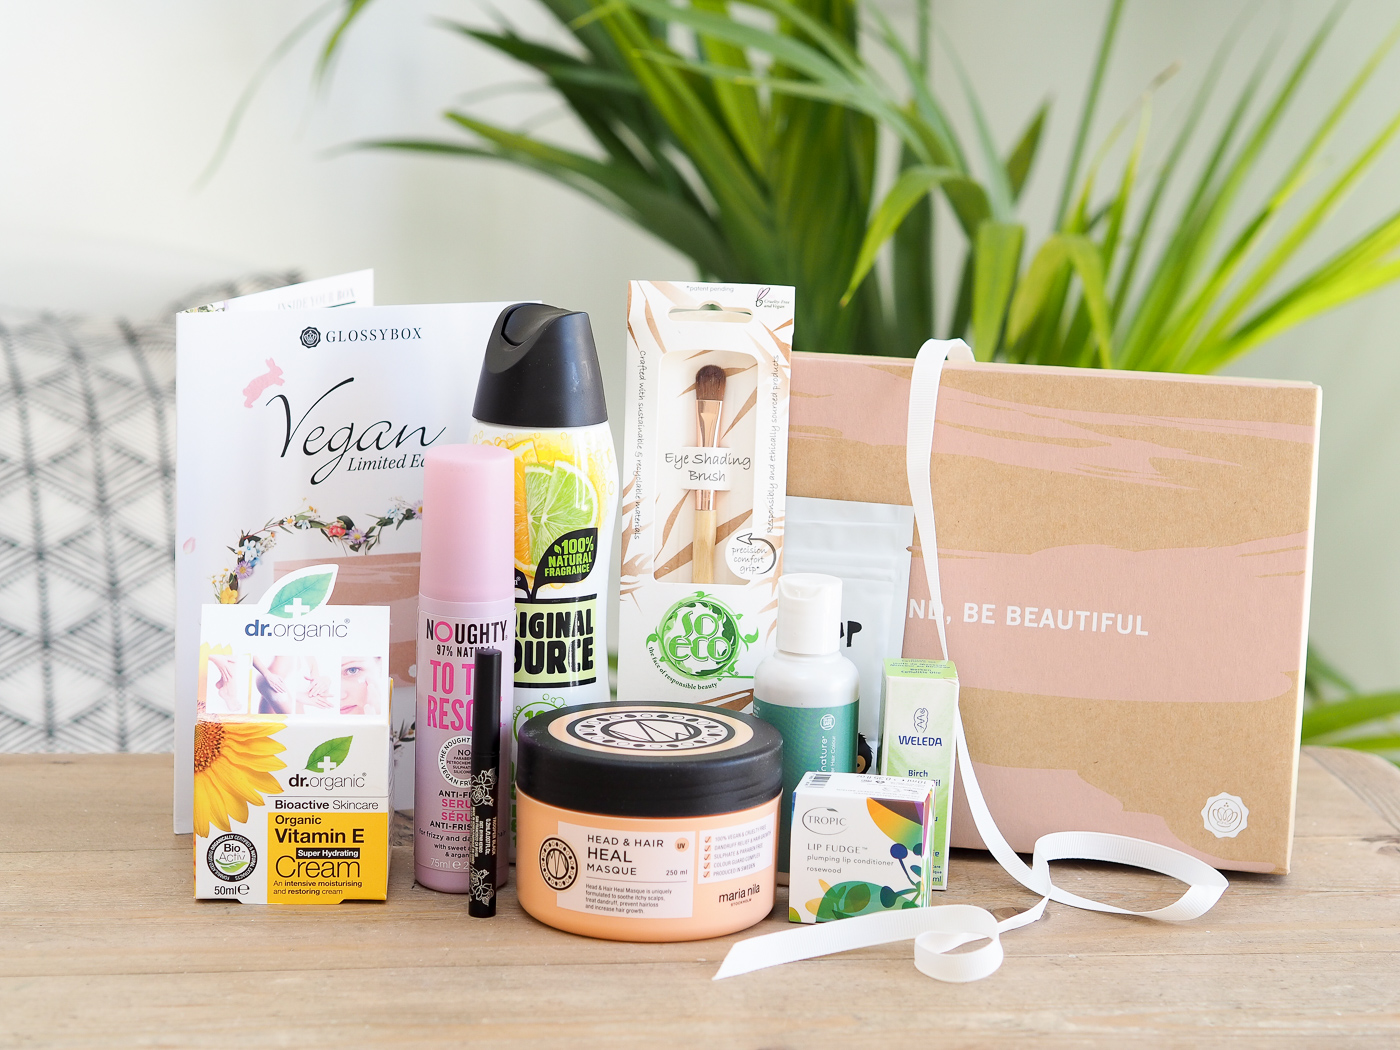 Limited Edition Vegan Glossybox contents